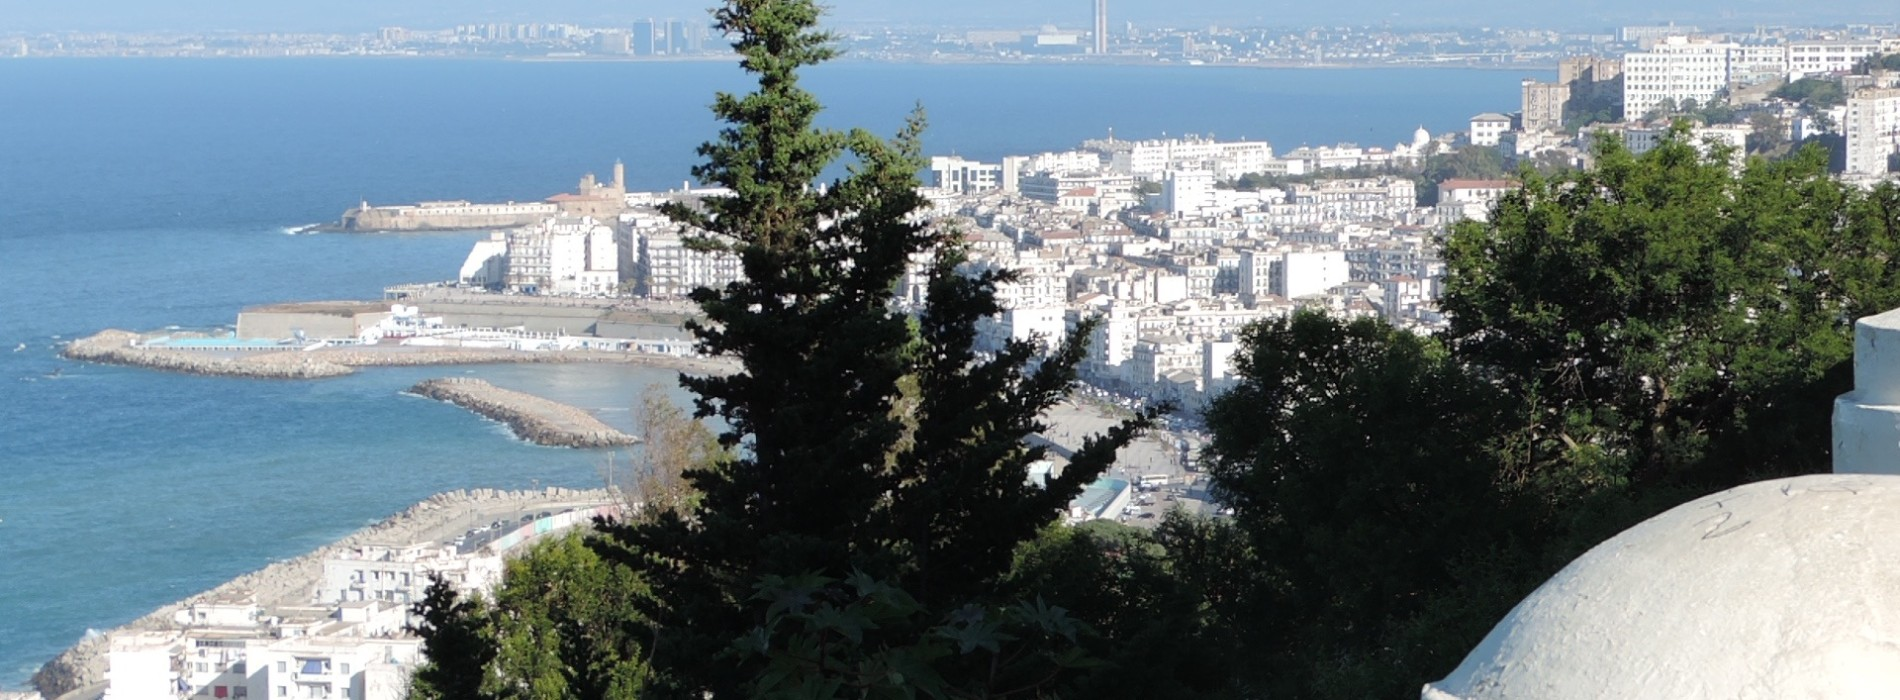 Algeria reconnects with tourist ambitions